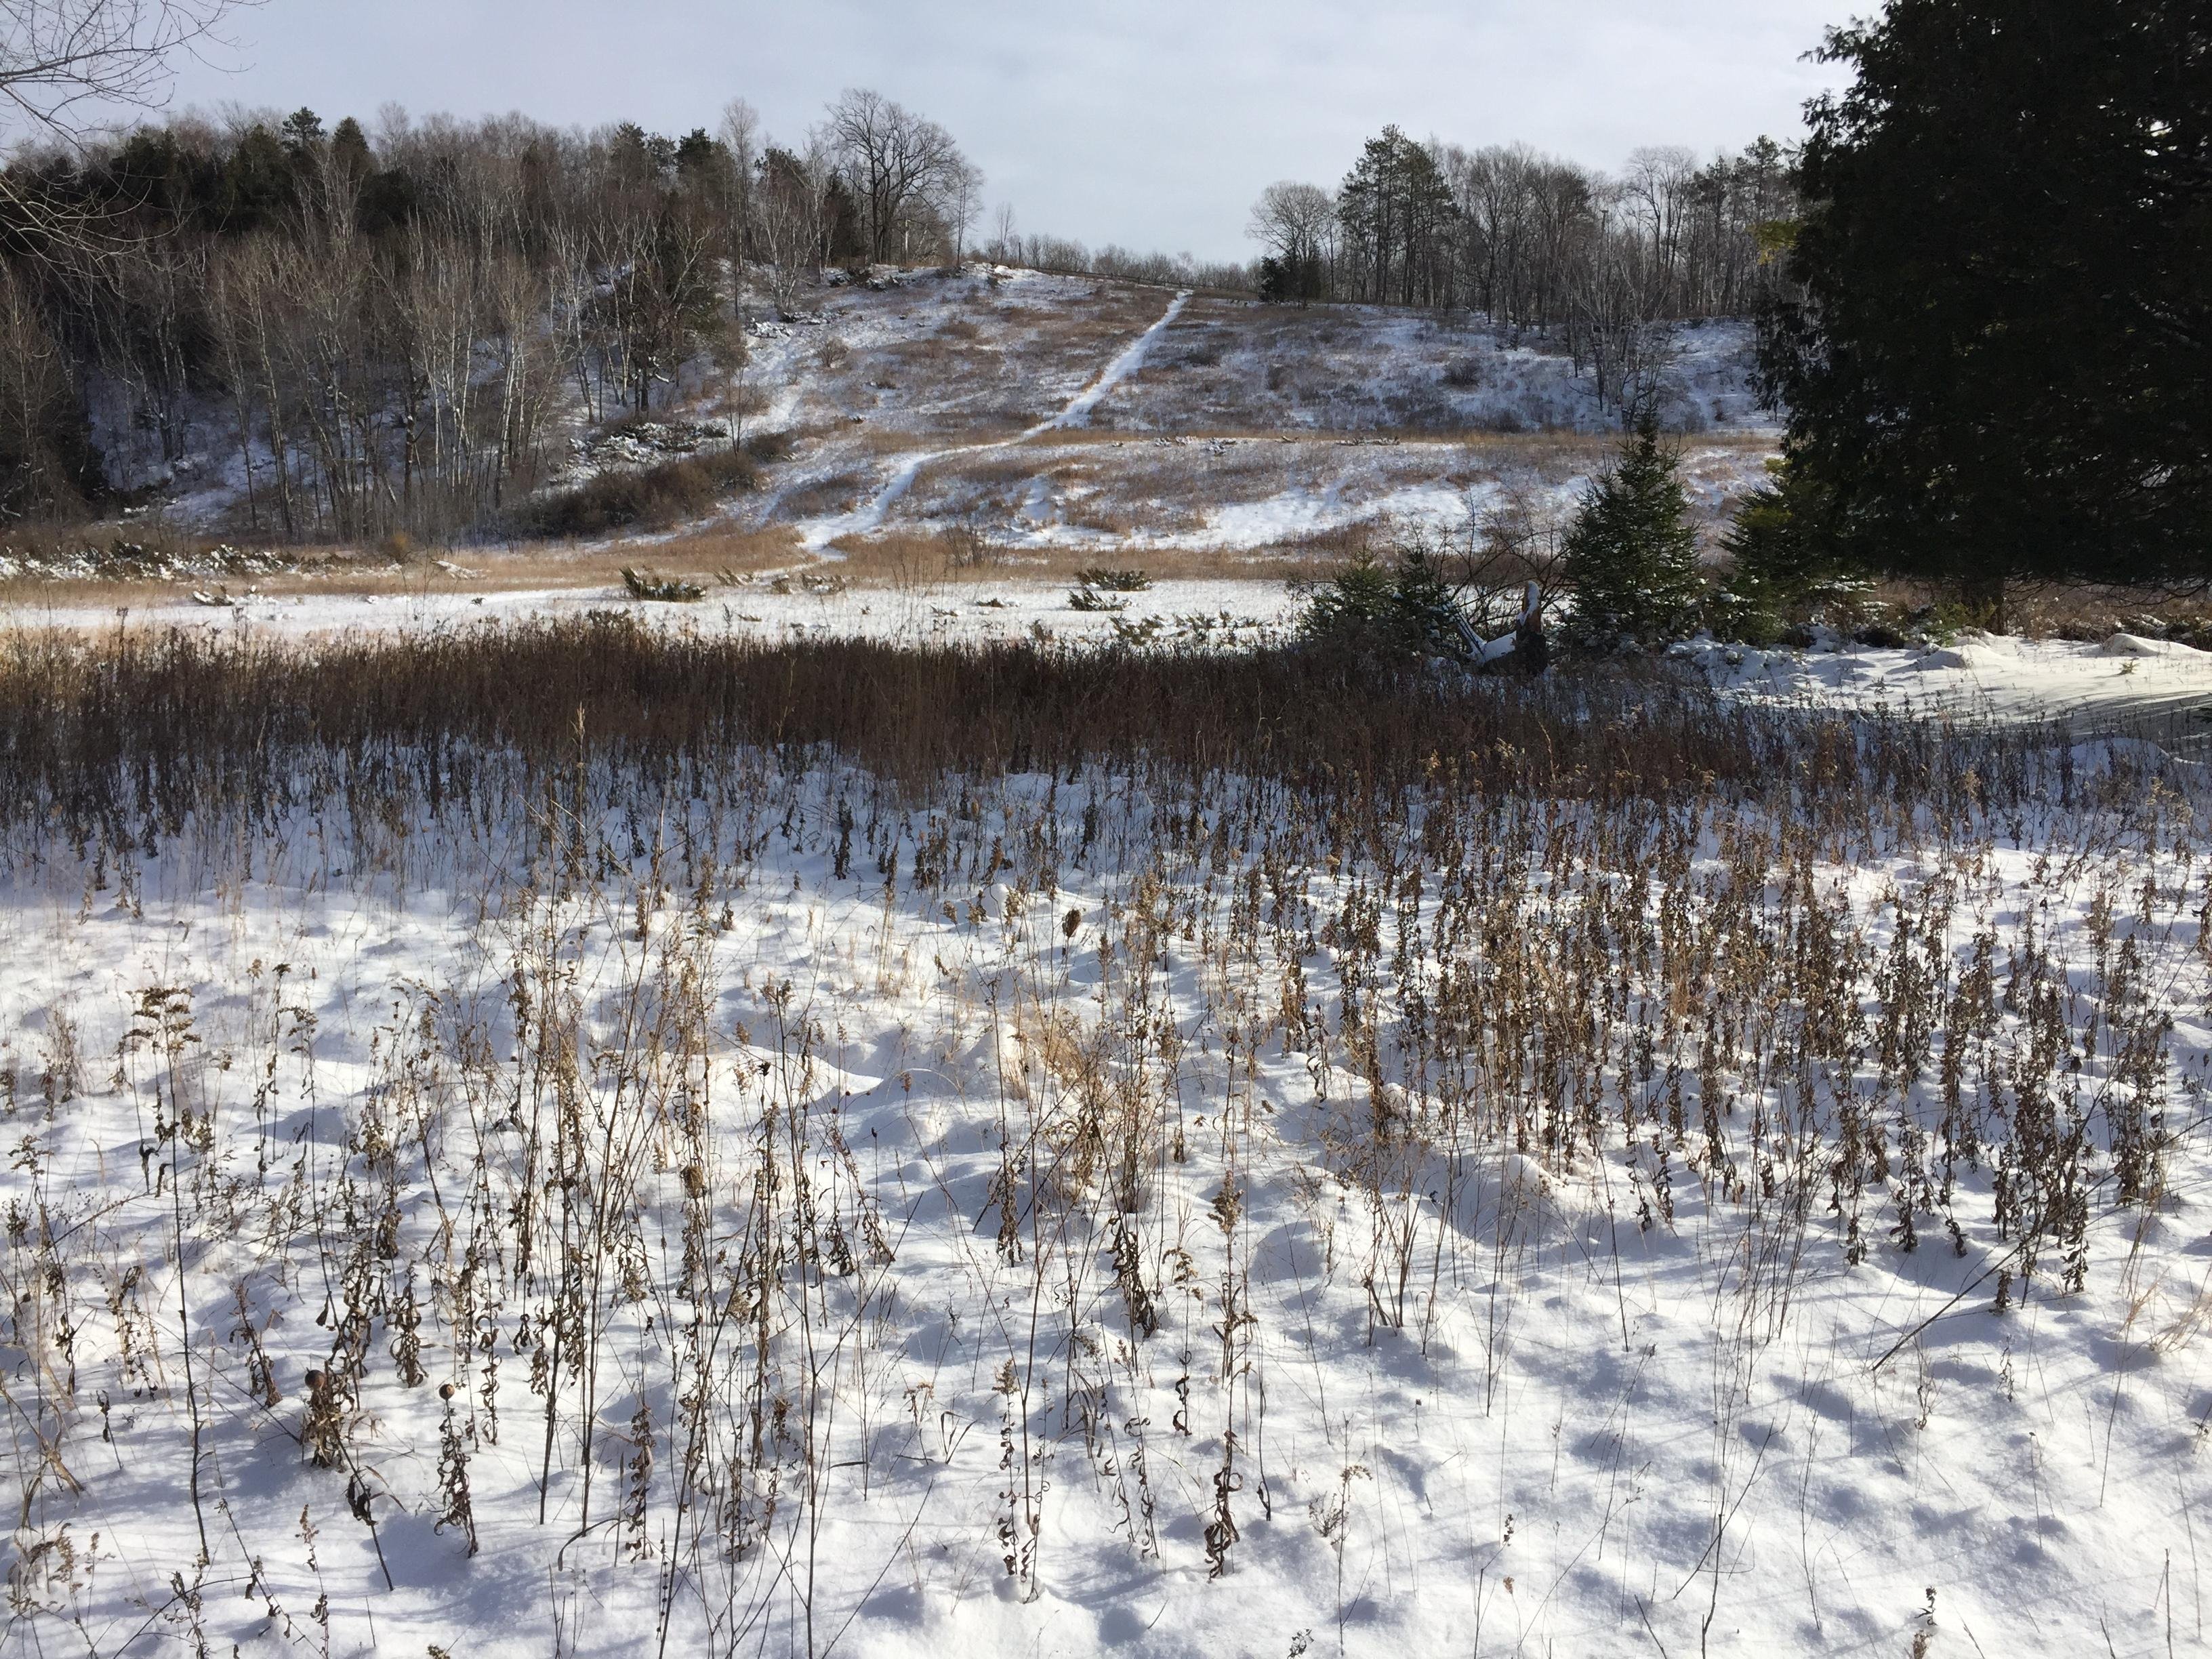 The former ski hill at Potawatomi State Park in the Door County Town of Nasewaupee is seen, Dec. 15, 2017. (WLUK/Eric Peterson)